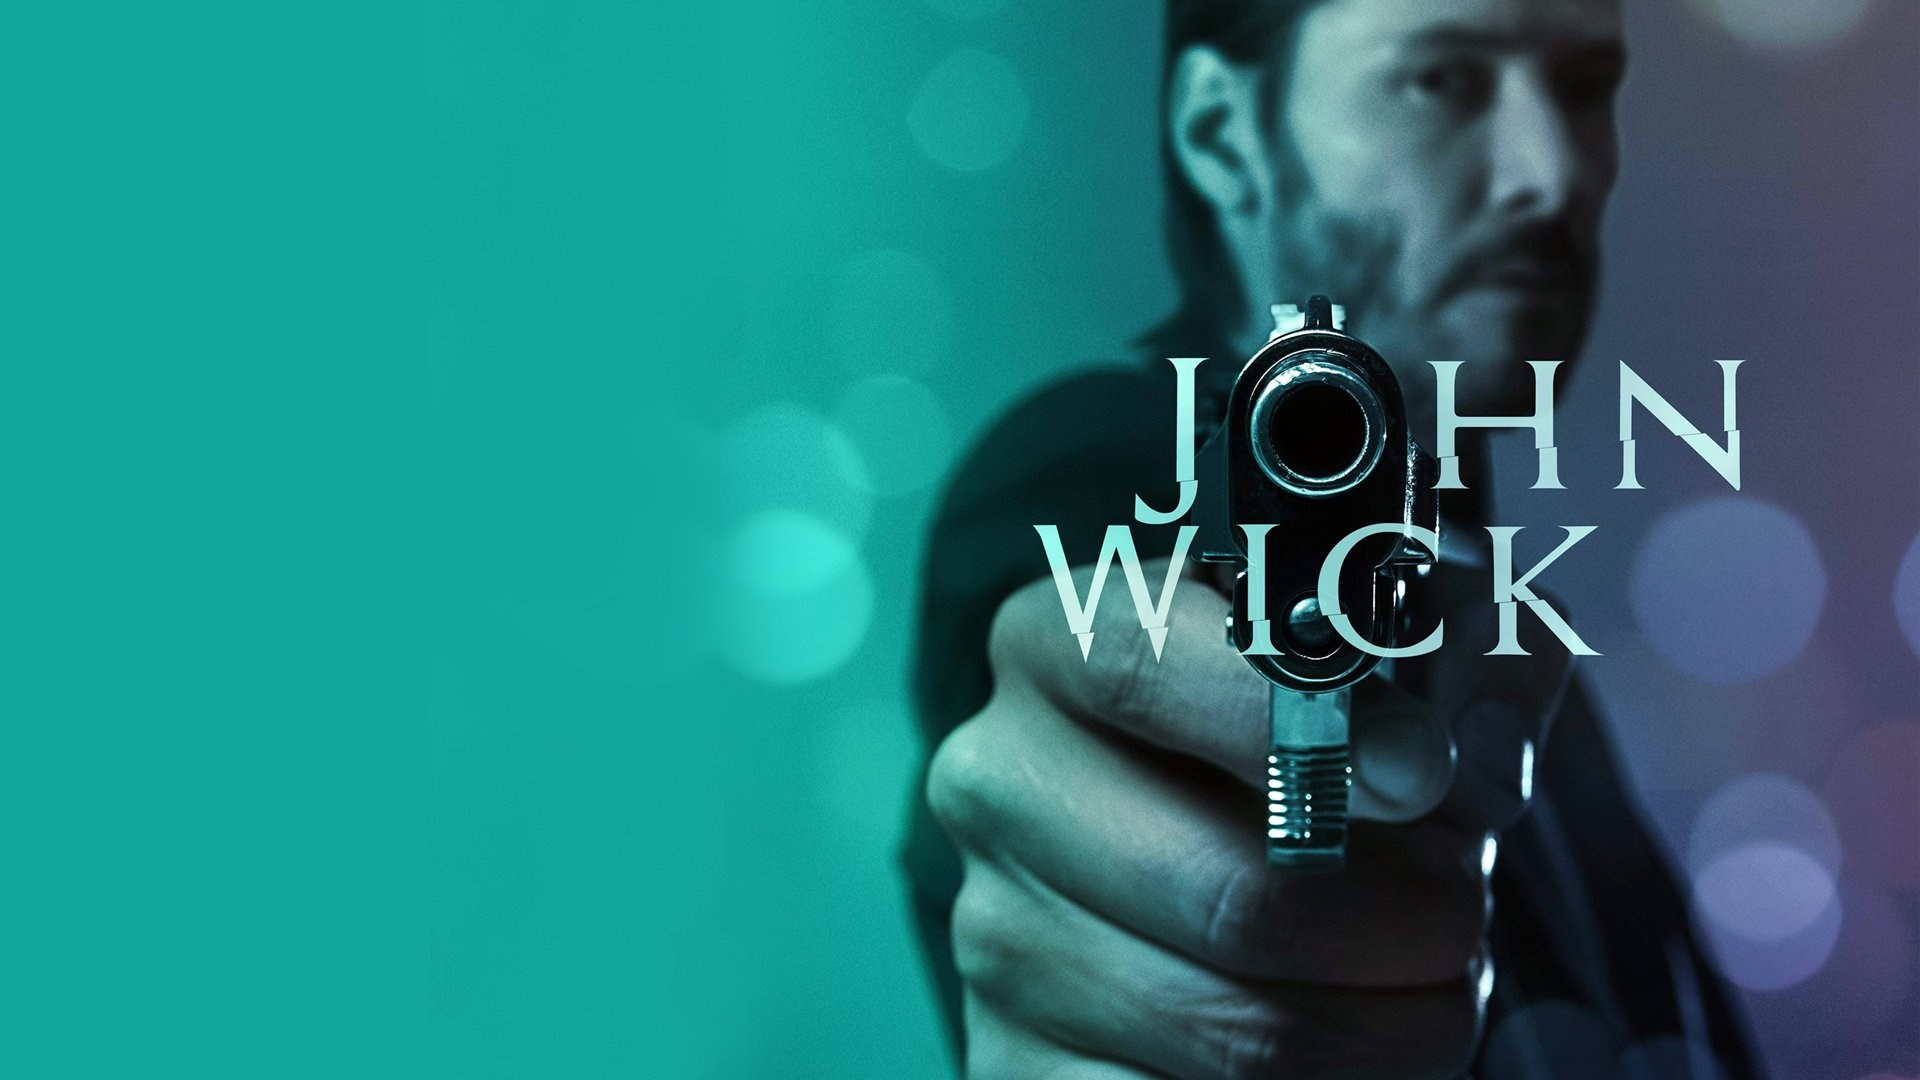 1920x1080-windows-john-wick-wallpaper-wpc5801116